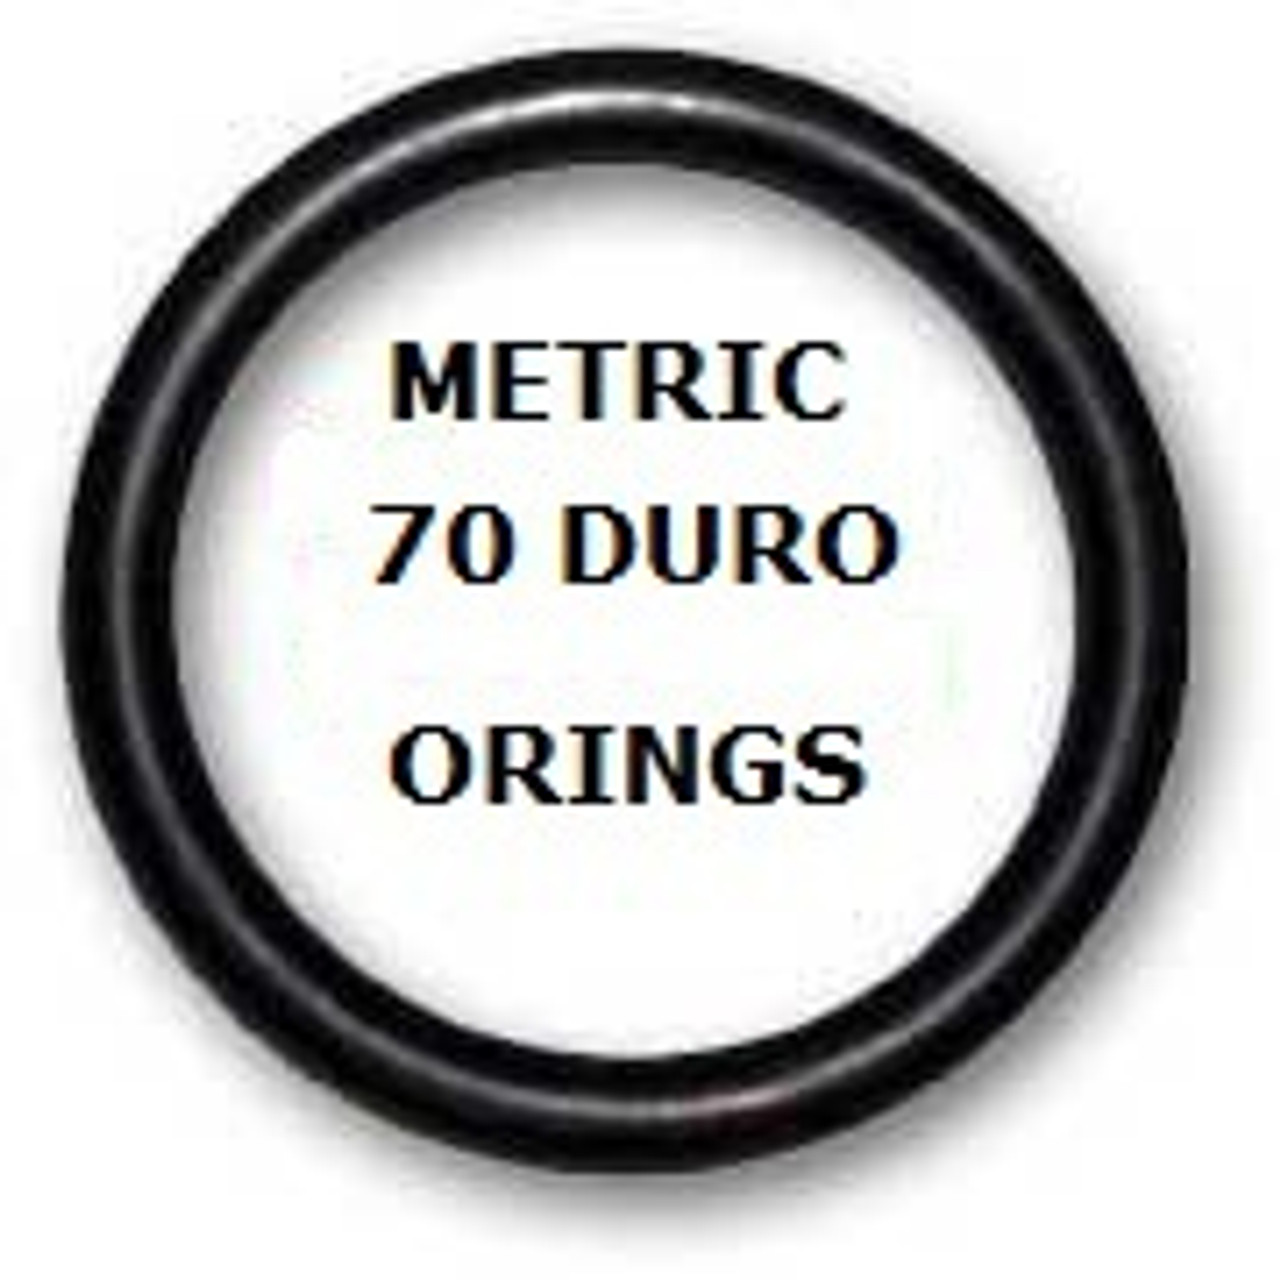 Metric Buna  O-rings 88 x 6mm Price for  1 pc